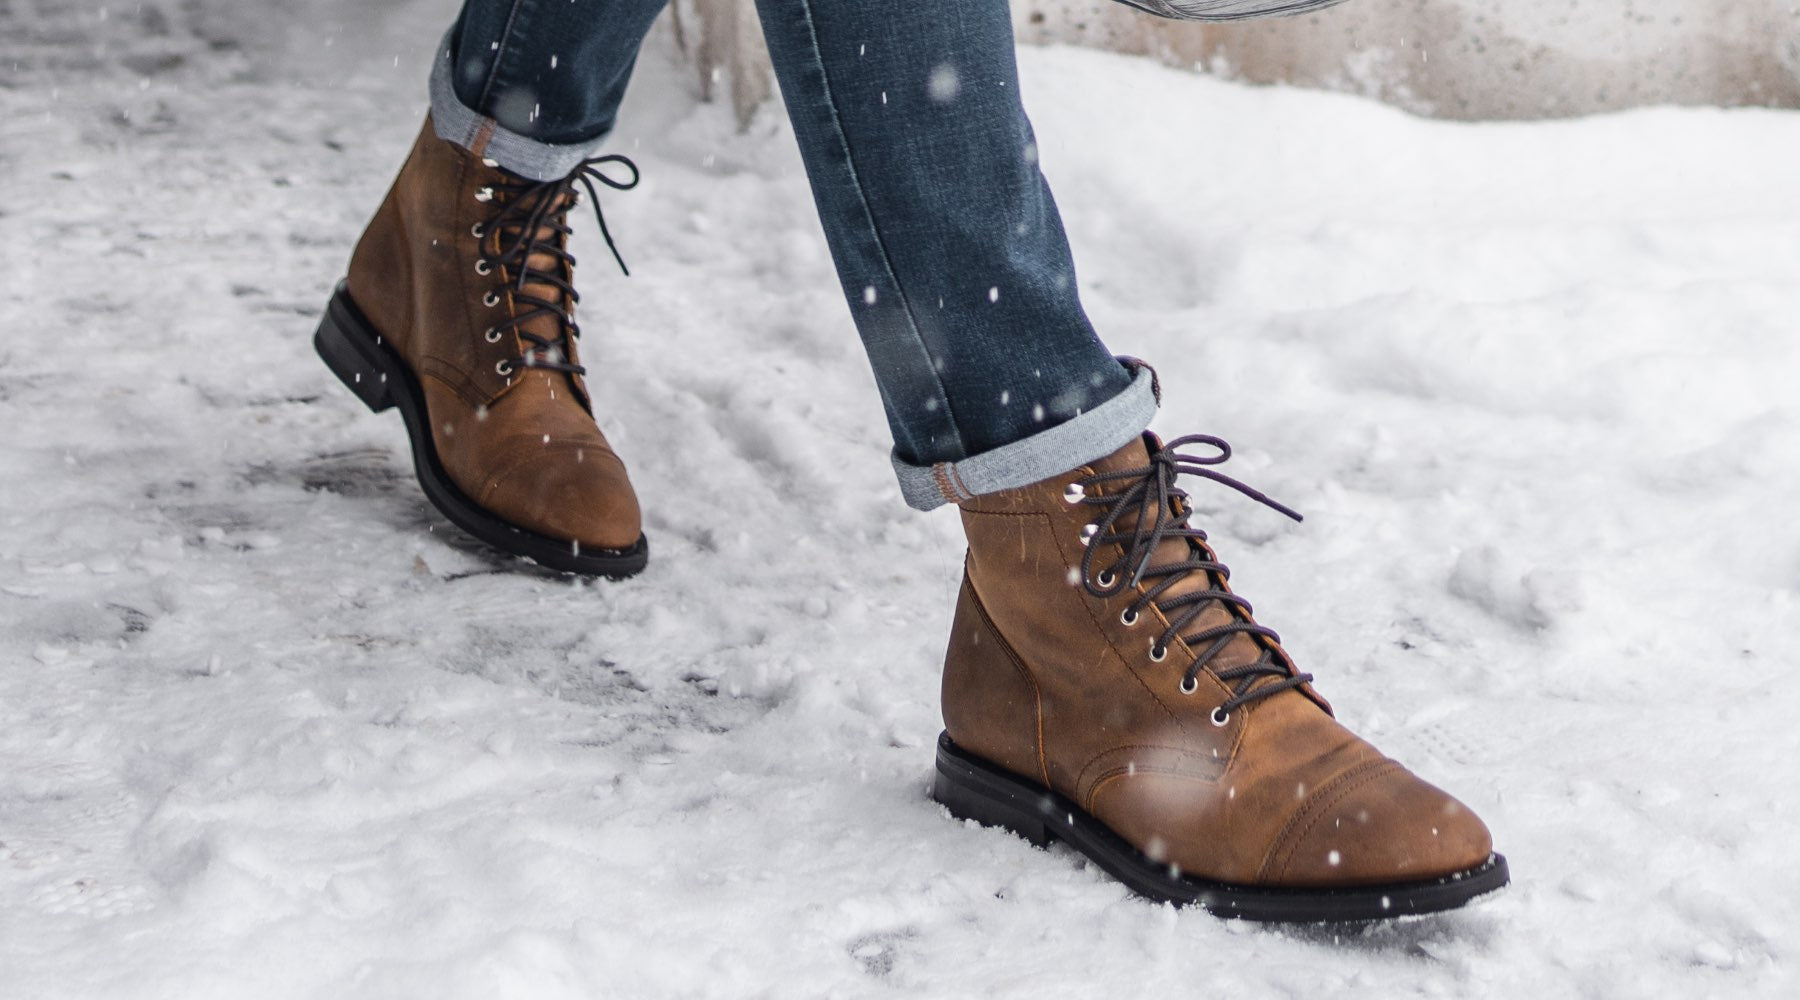 What Makes a Great Winter Boot